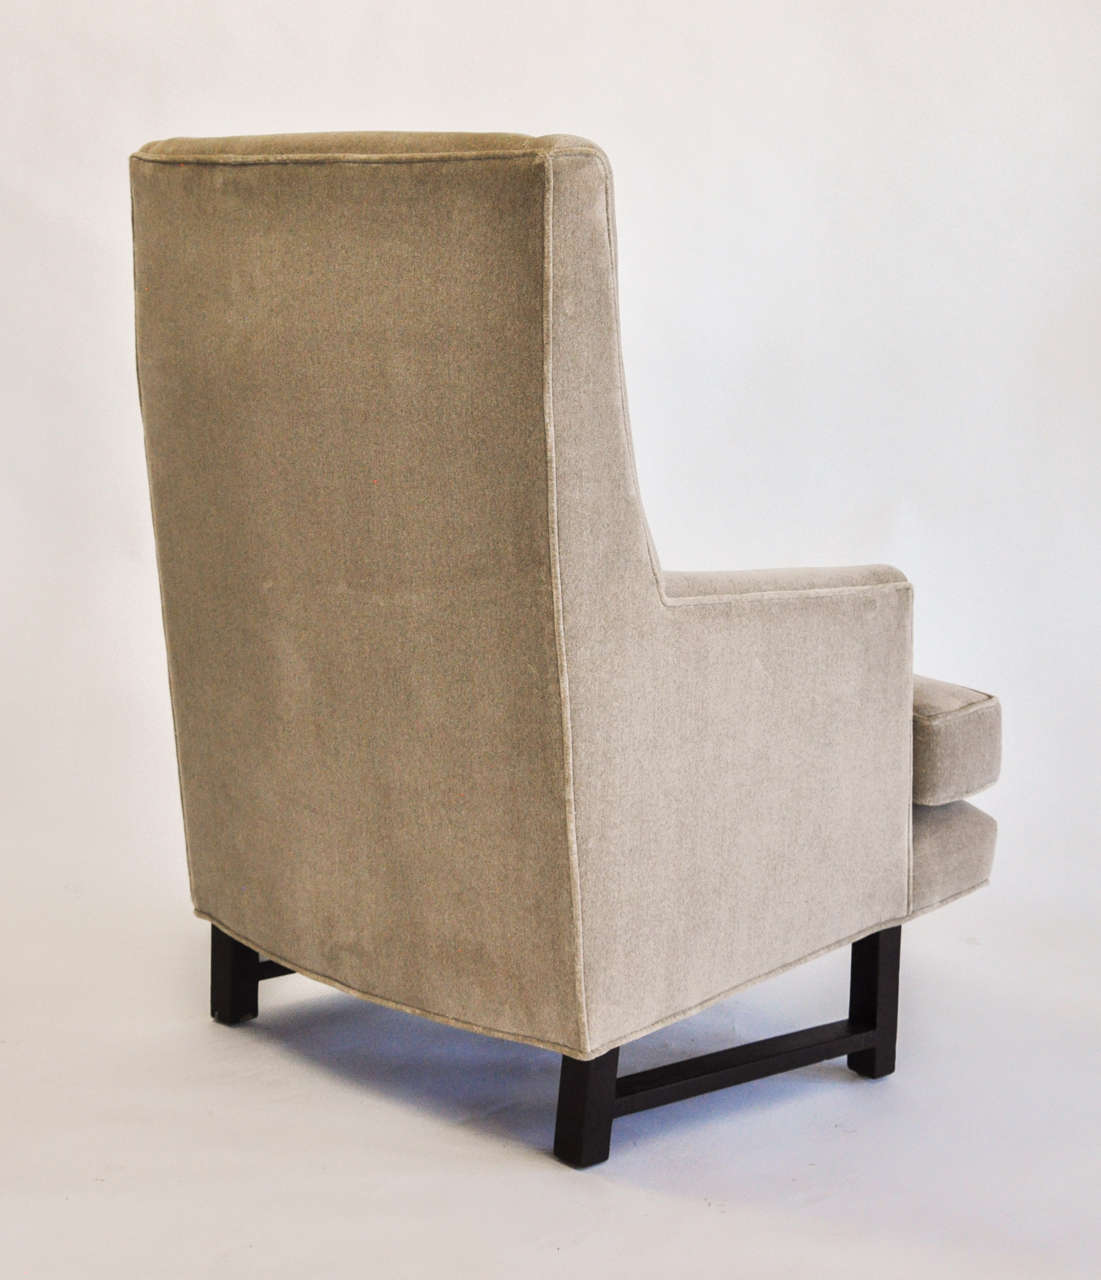 Armchair Designed by Edward Wormley for Dunbar For Sale 1